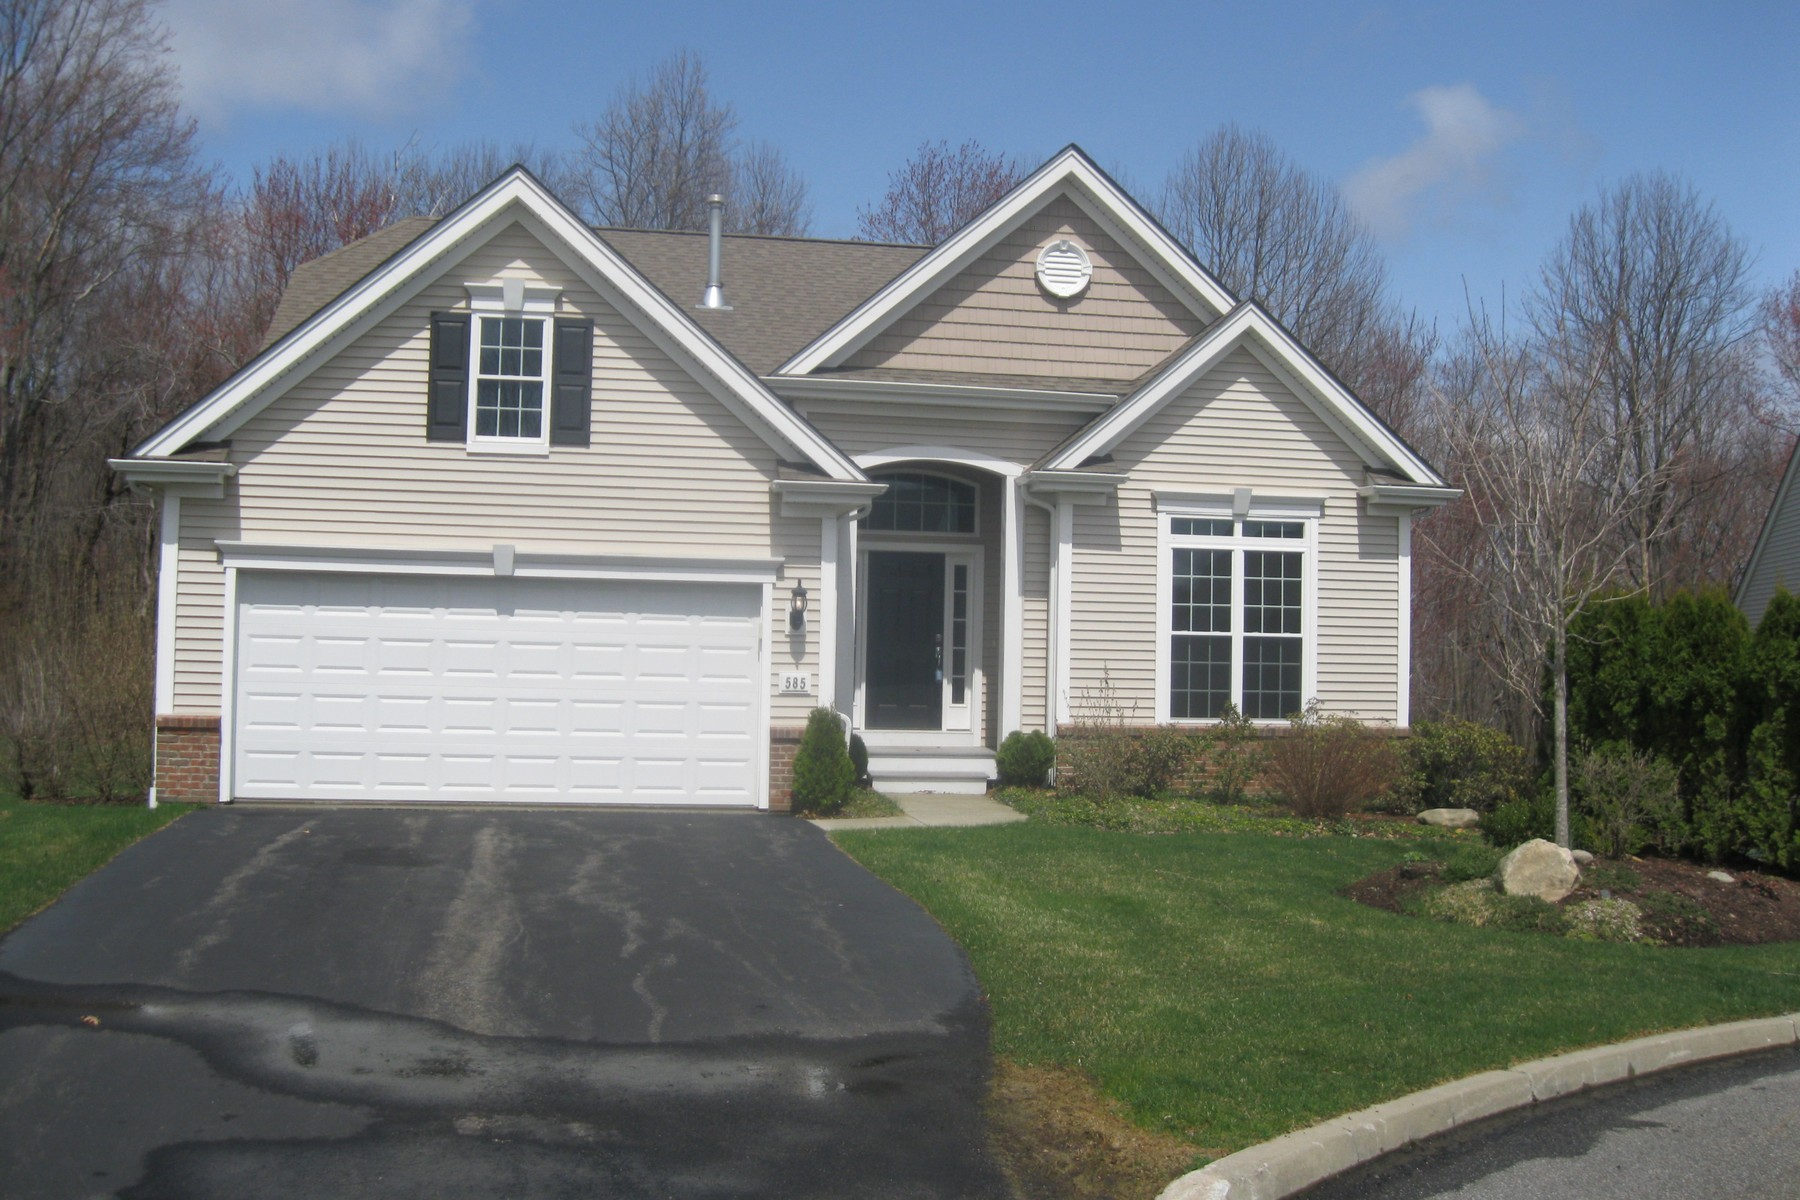 Property For Sale at Exceptional 2010 Laurel Model Colonial in Oxford Greens